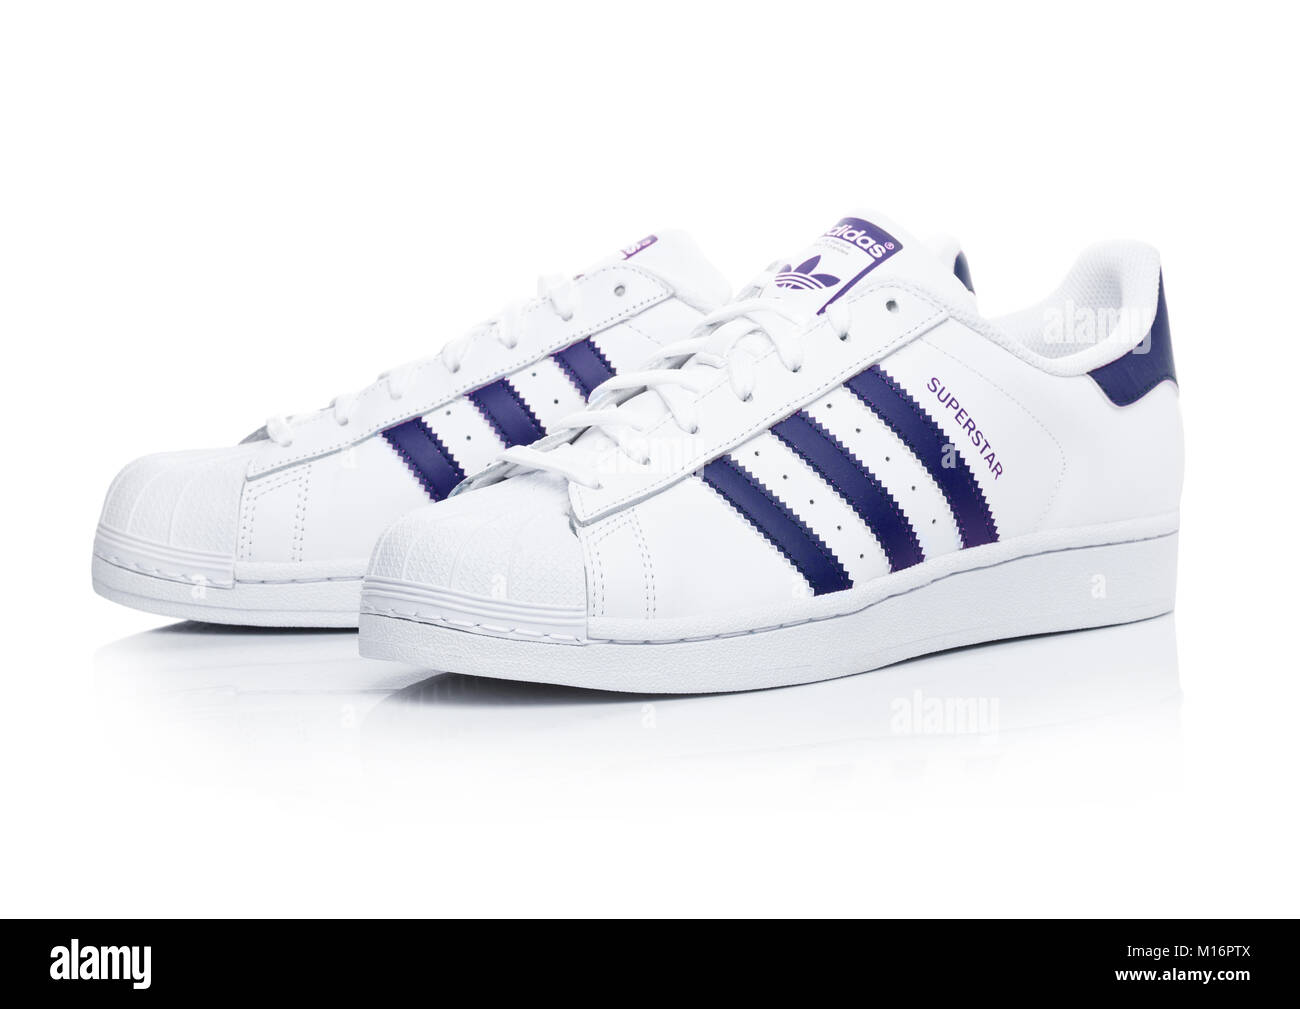 timeless design aae1d f30cd LONDON, Regno Unito - 24 gennaio 2018 Adidas Originals Superstar scarpe  blu su sfondo bianco.tedesco società multinazionale che progetta e  fabbricazione